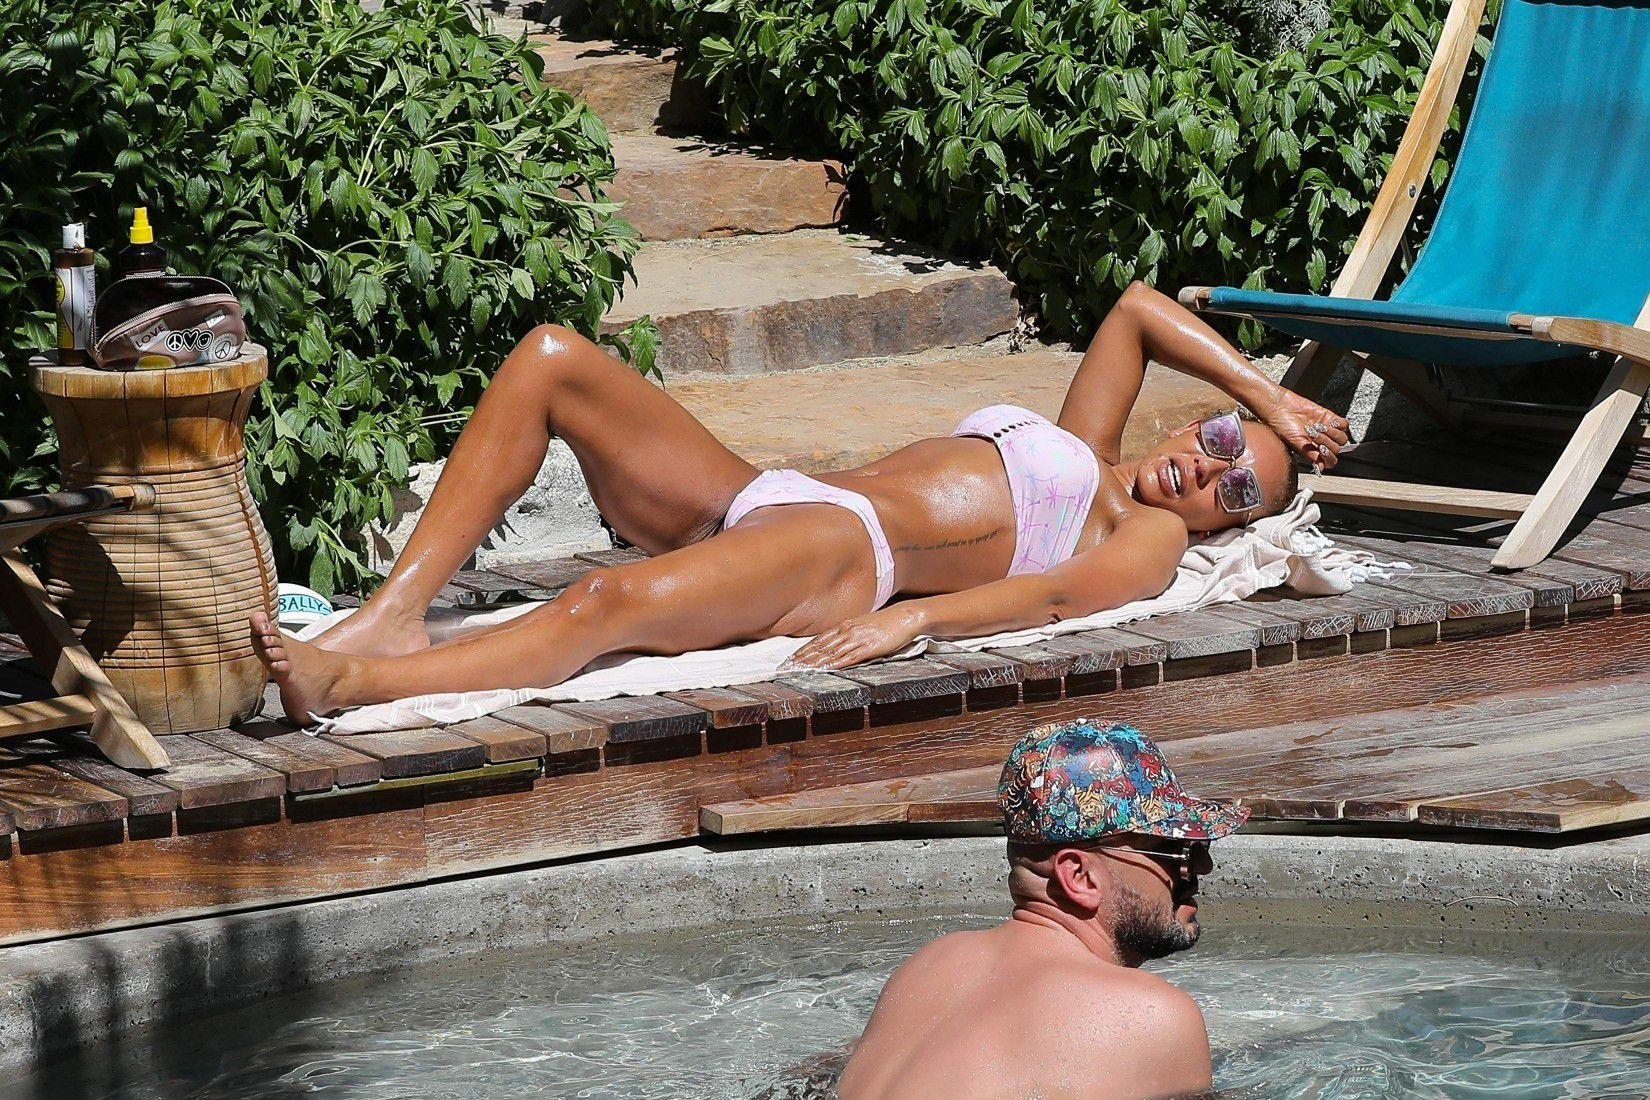 melanie-brown-wearing-a-bikini-by-the-pool-in-palm-strings-9073